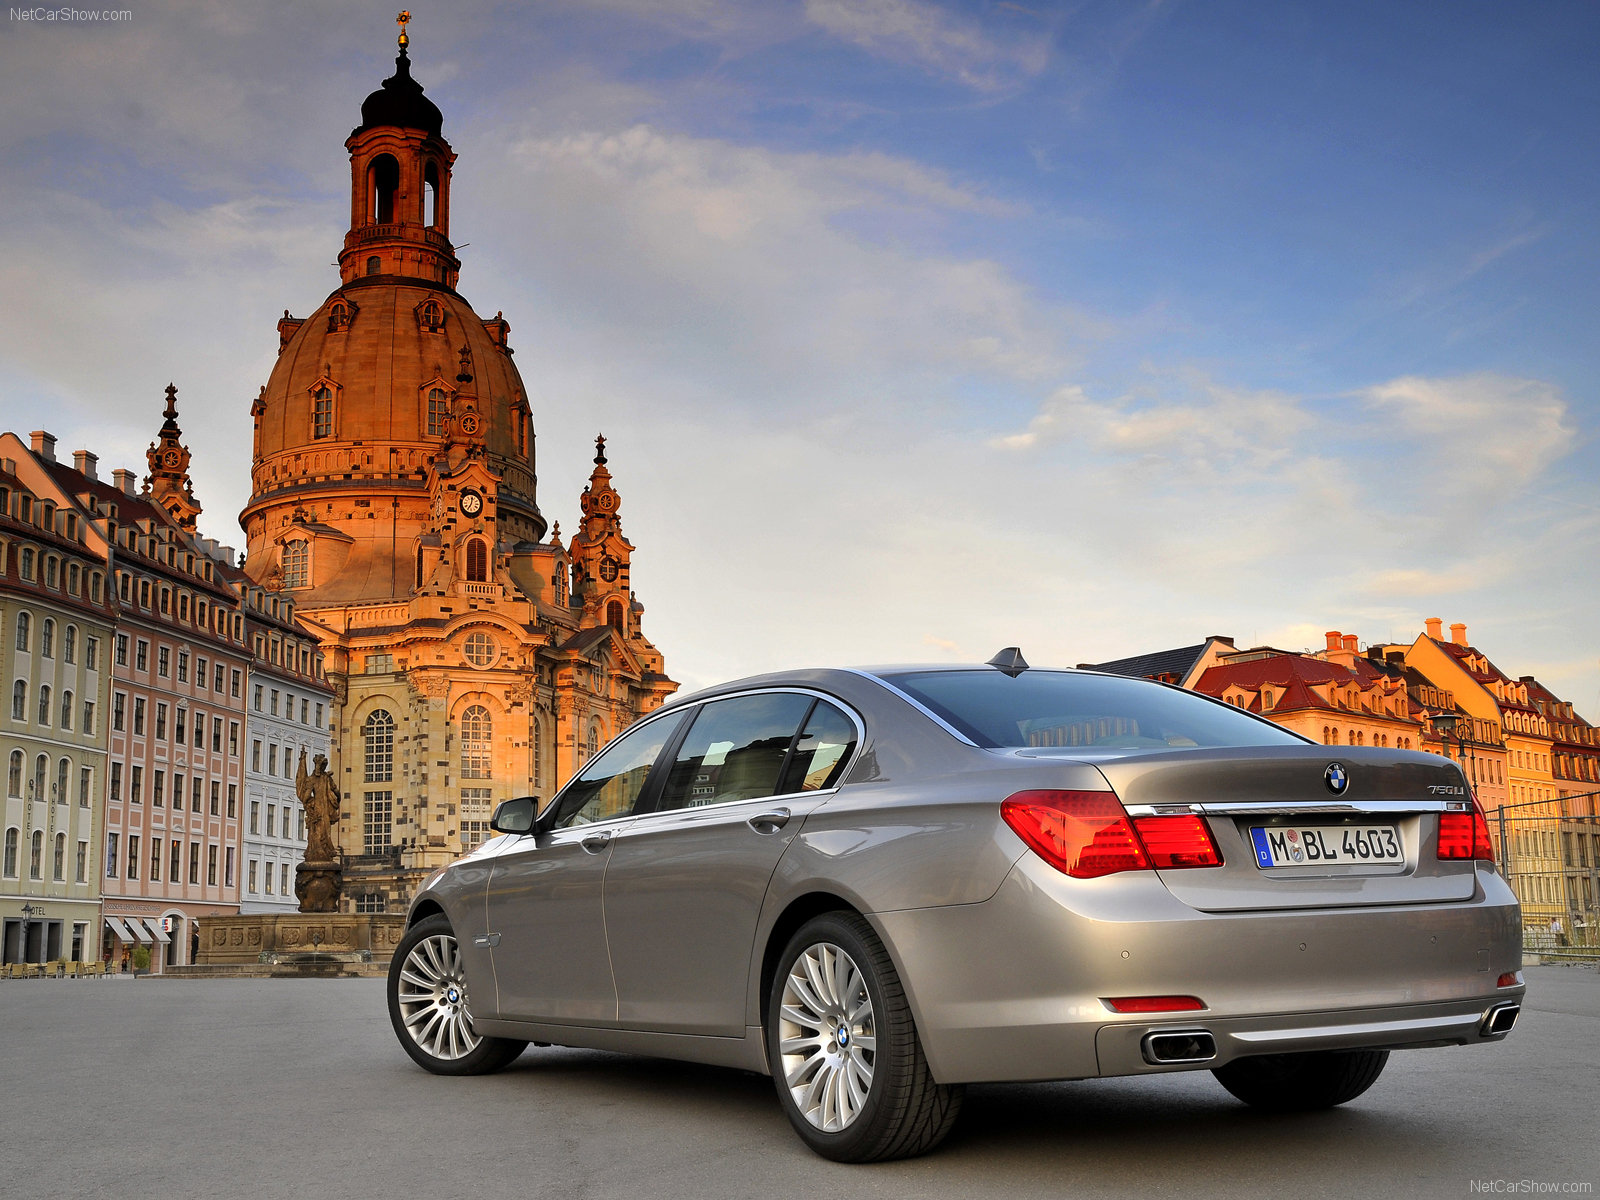 BMW 7-series F01 F02 photos - PhotoGallery with 120 pics ...